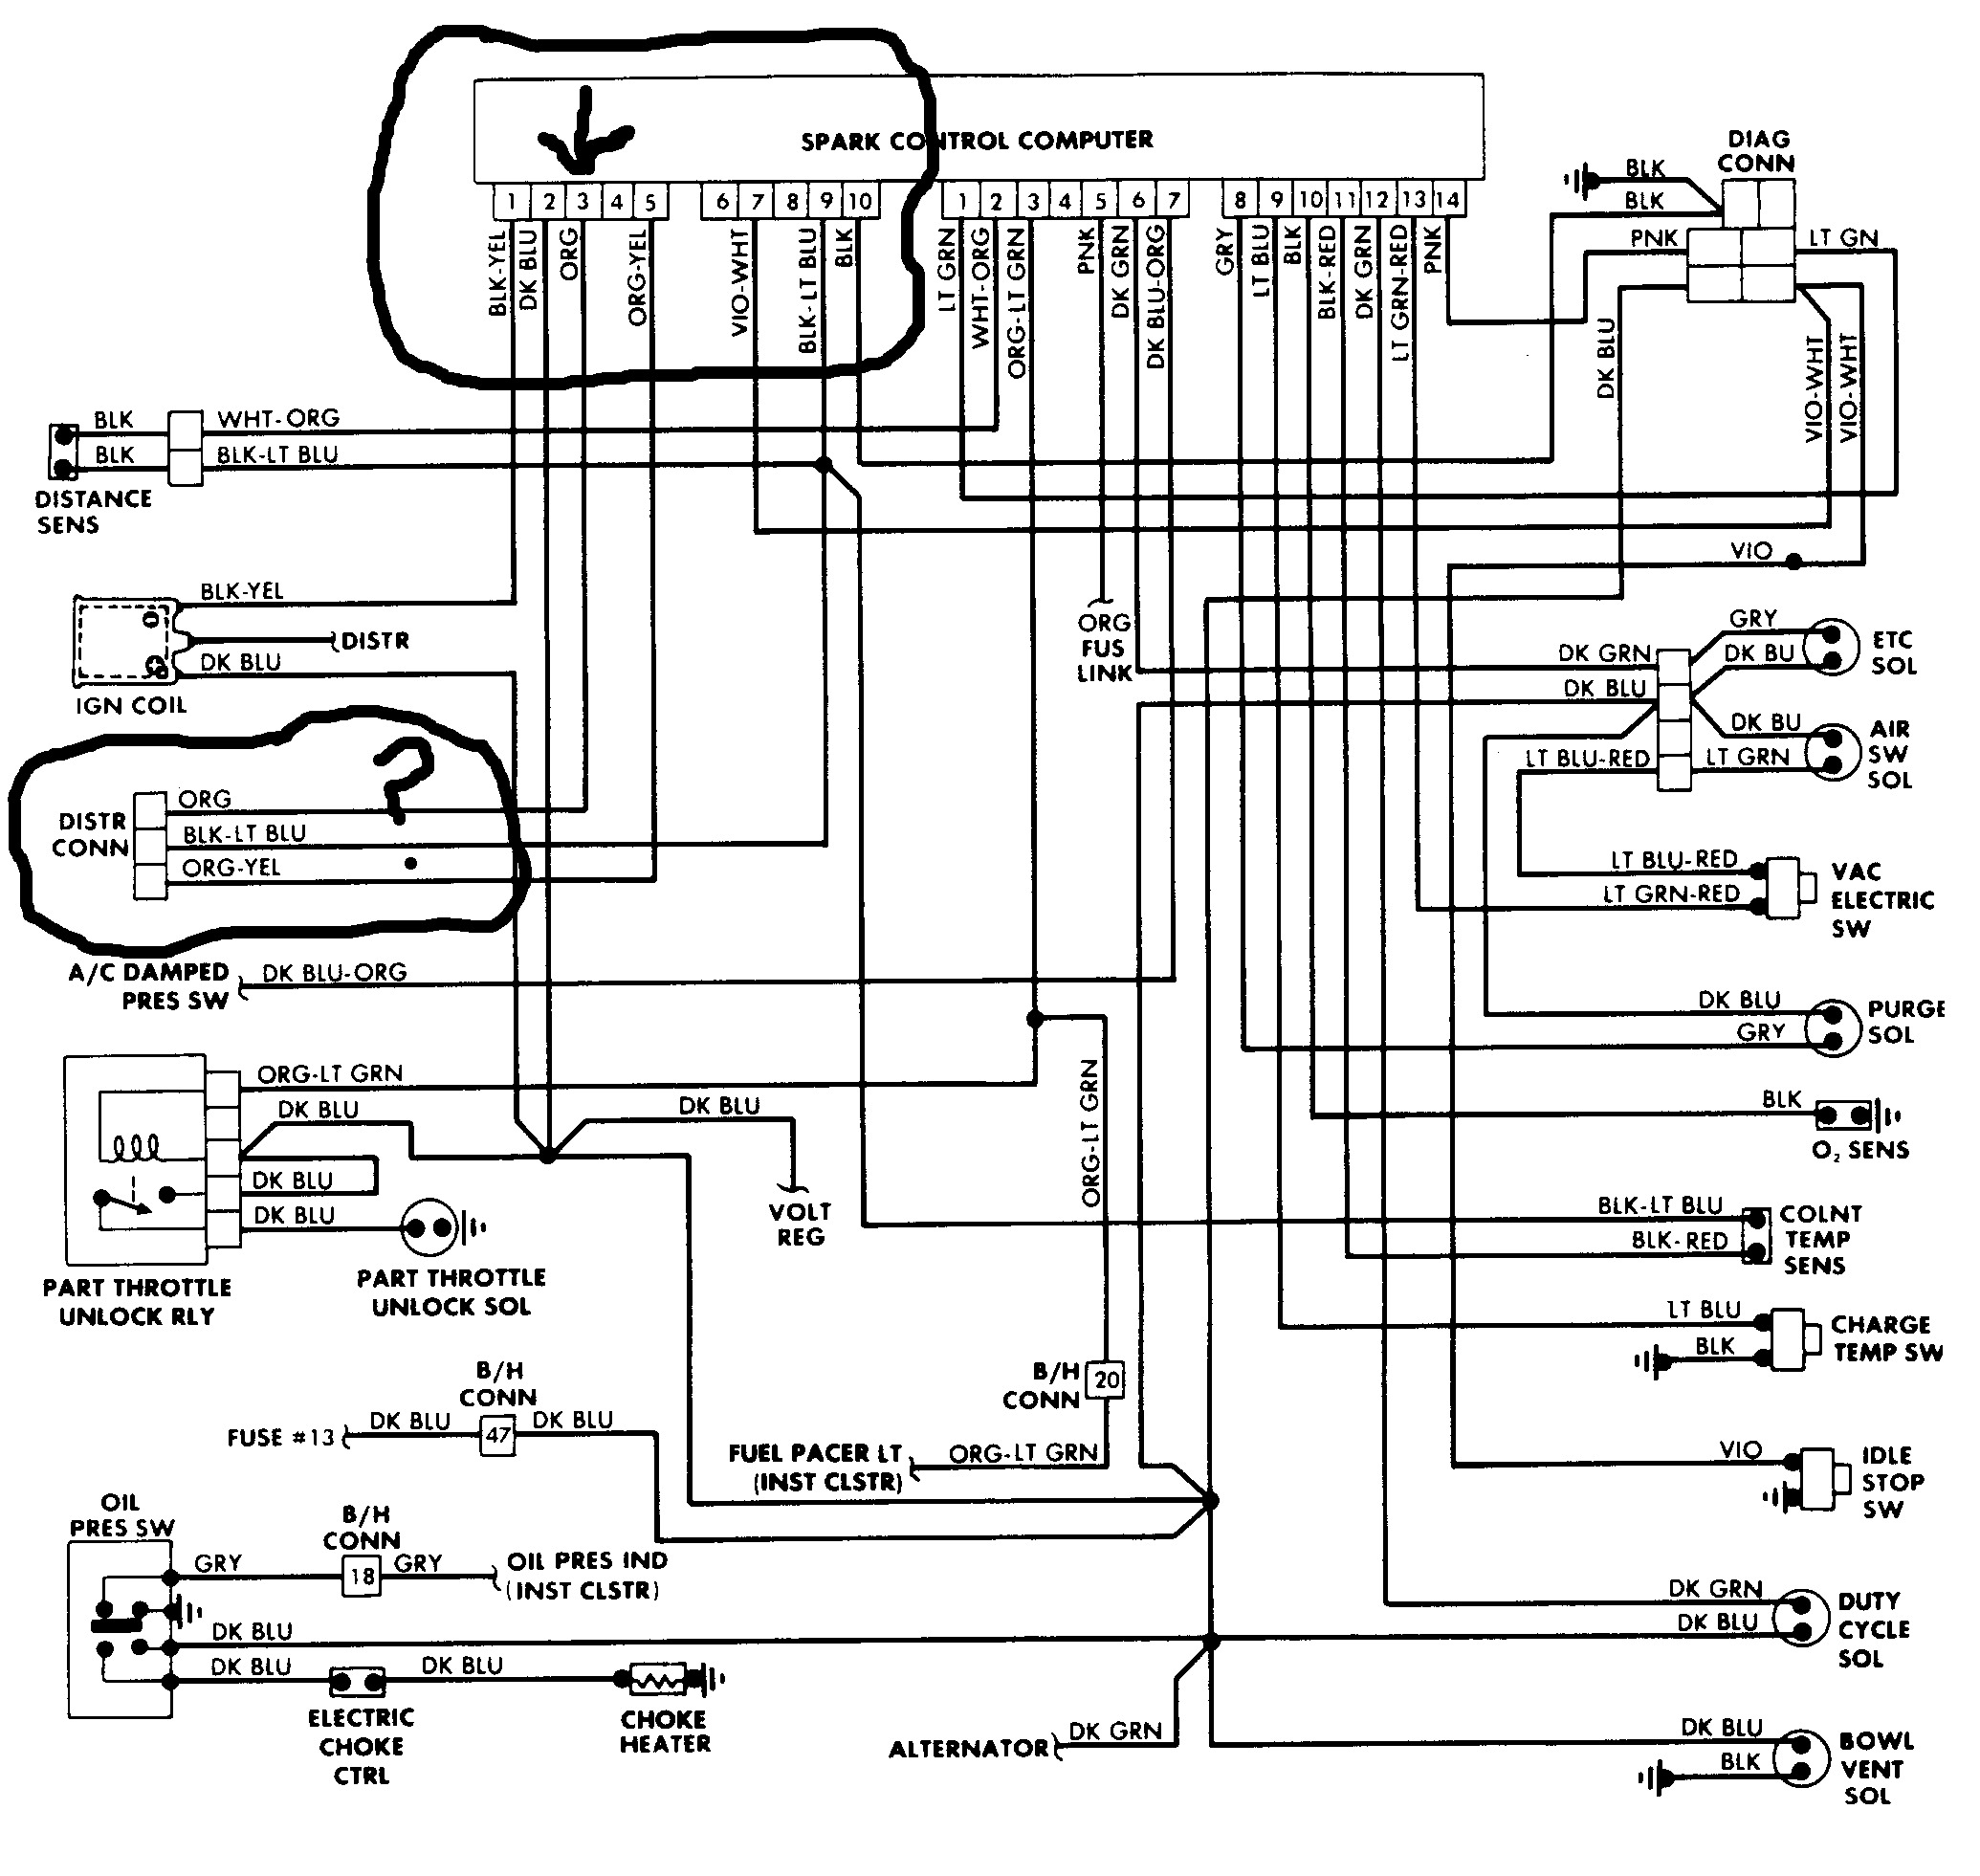 1987 Dodge Dakota 3 9 Engine Diagram. Dodge. Auto Parts